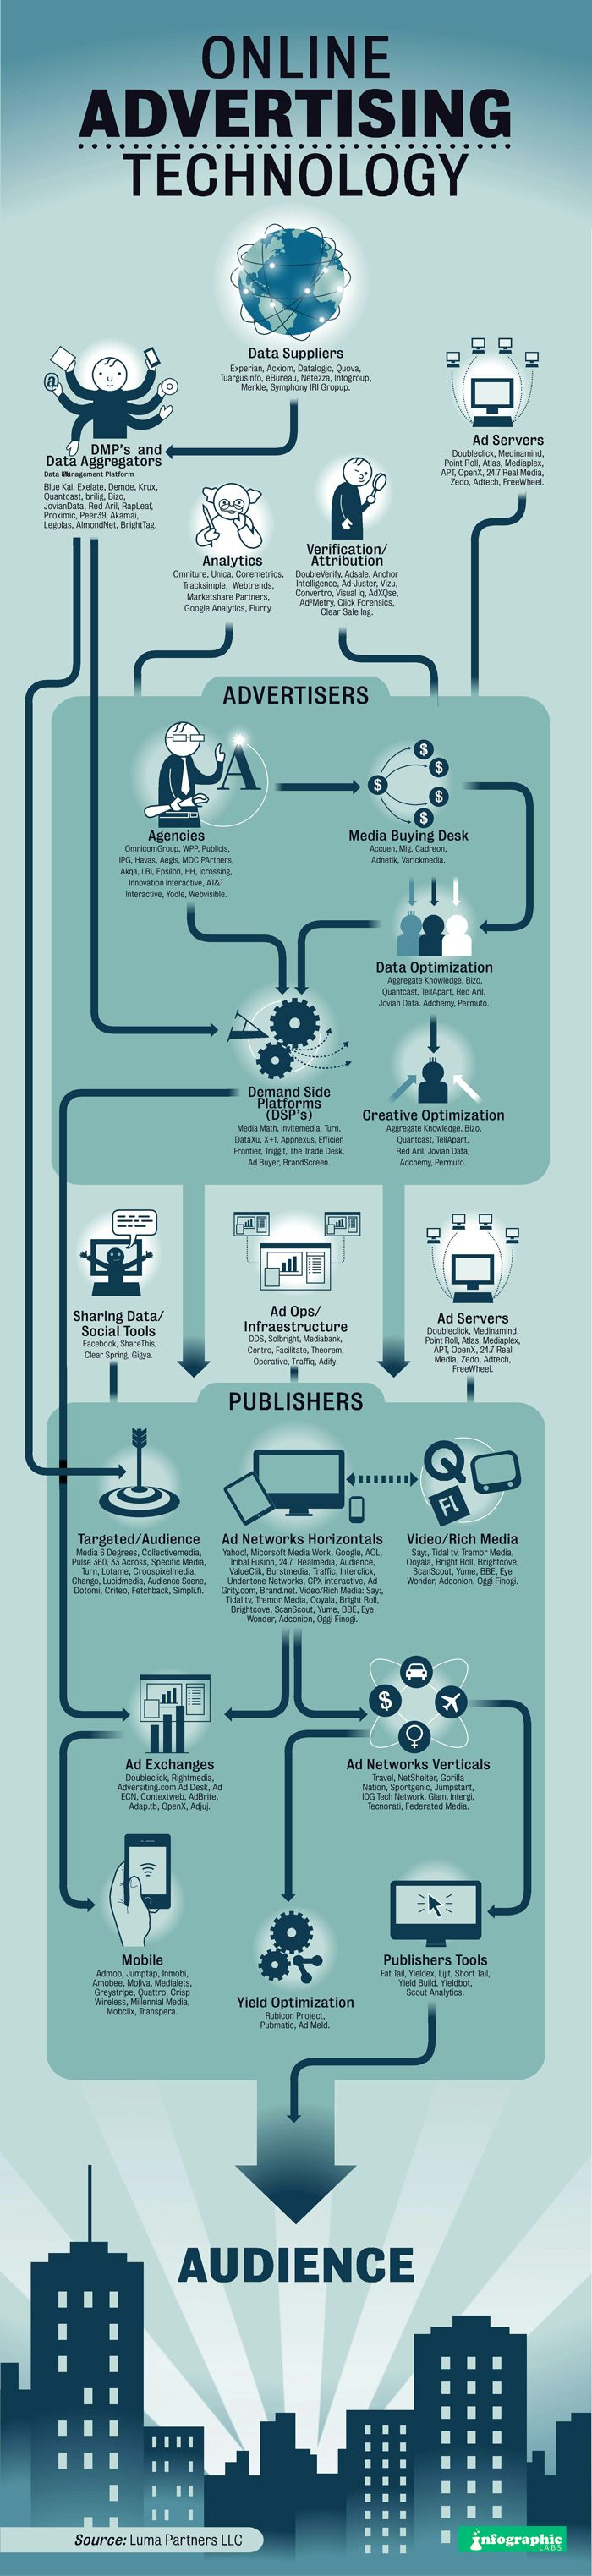 Agency To Audience online advertising Infographic